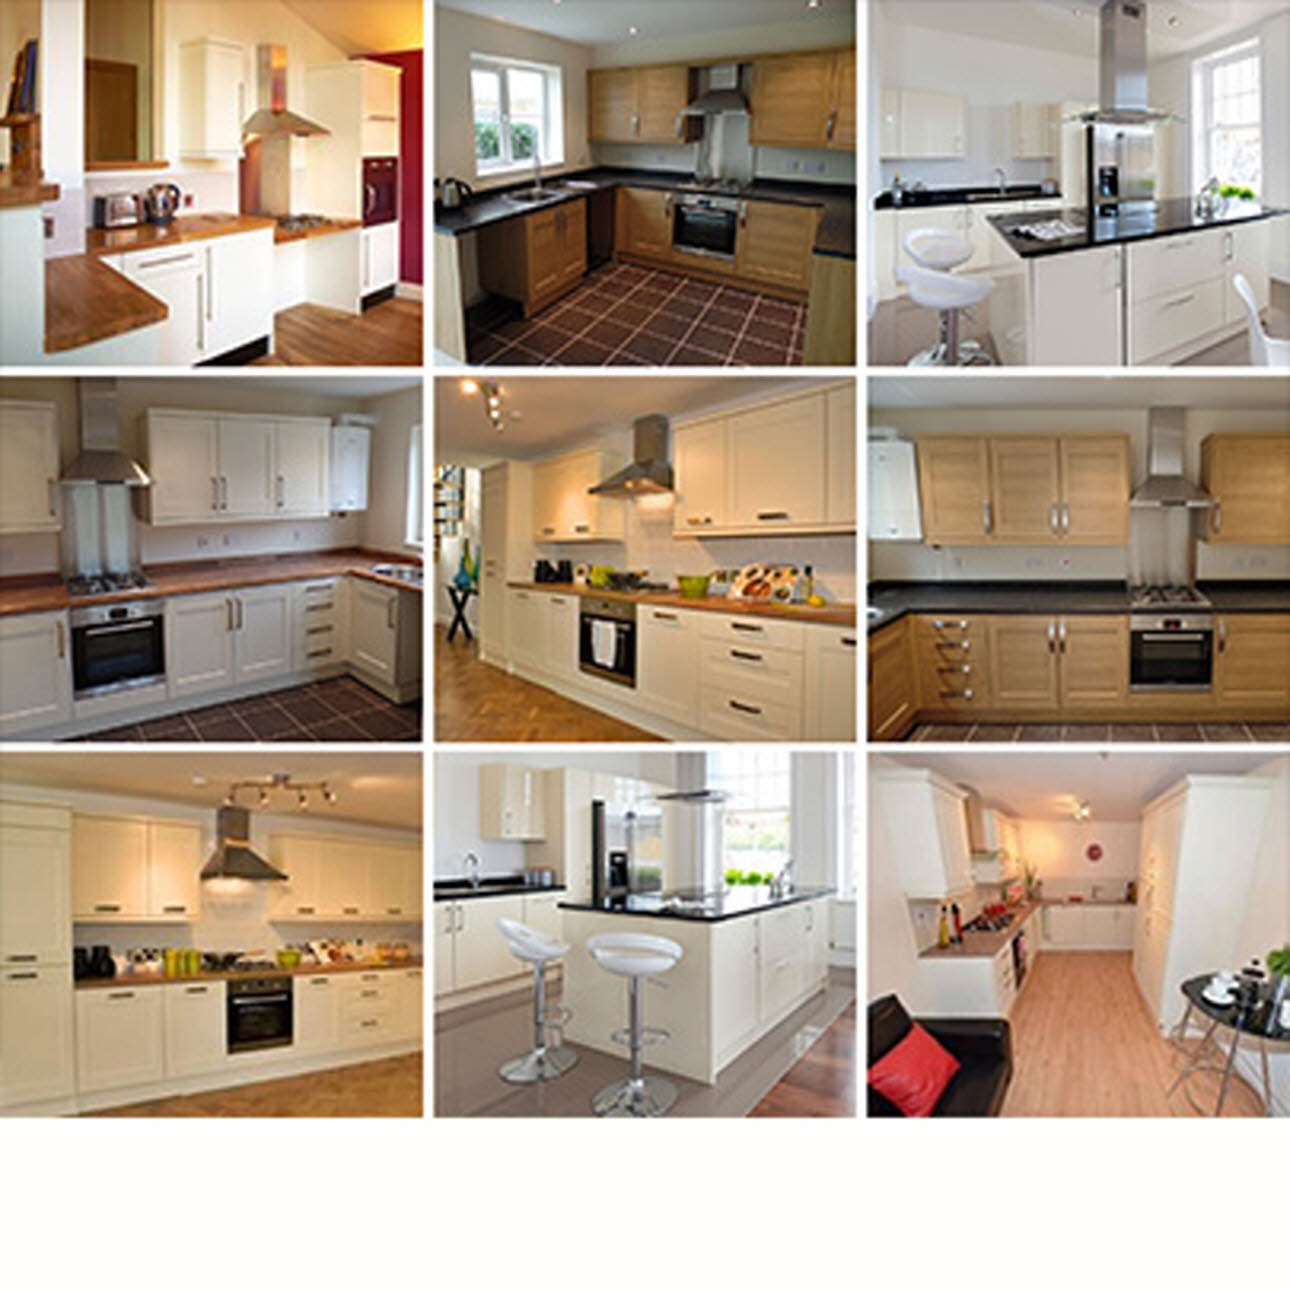 Social Housing Contract Kitchens & Developers